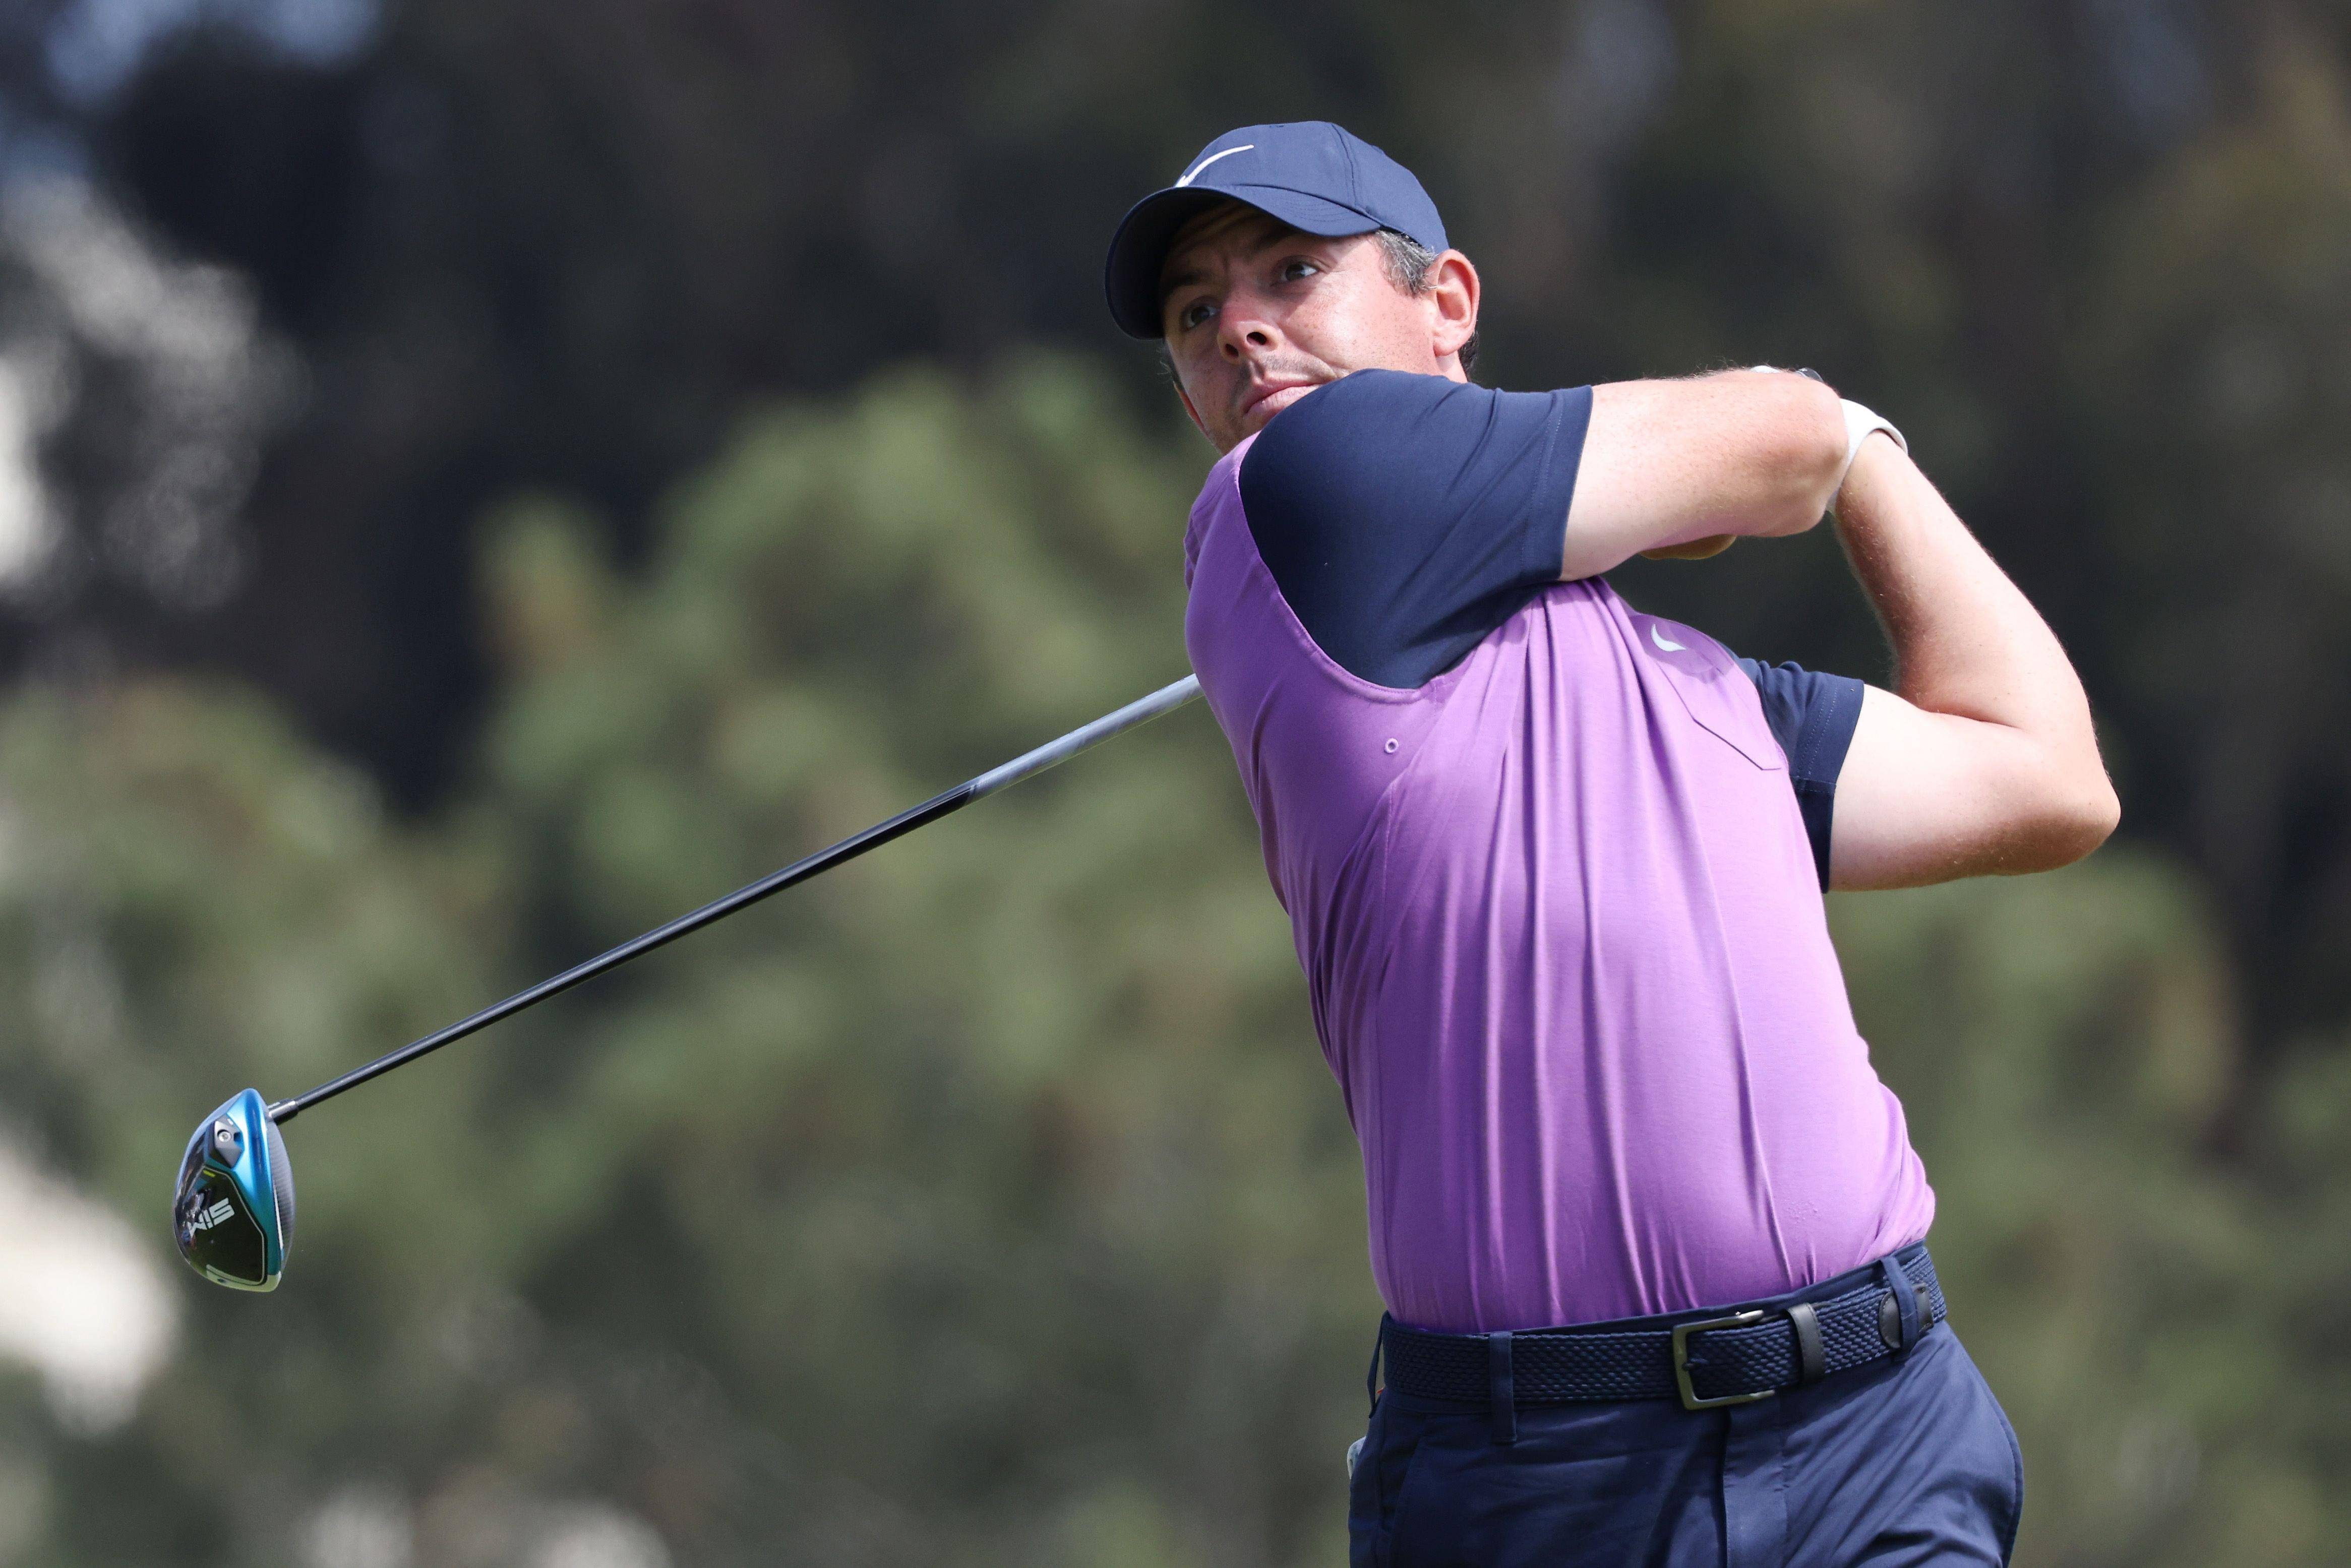 McIlroy chases lead trio in bid to end major win drought